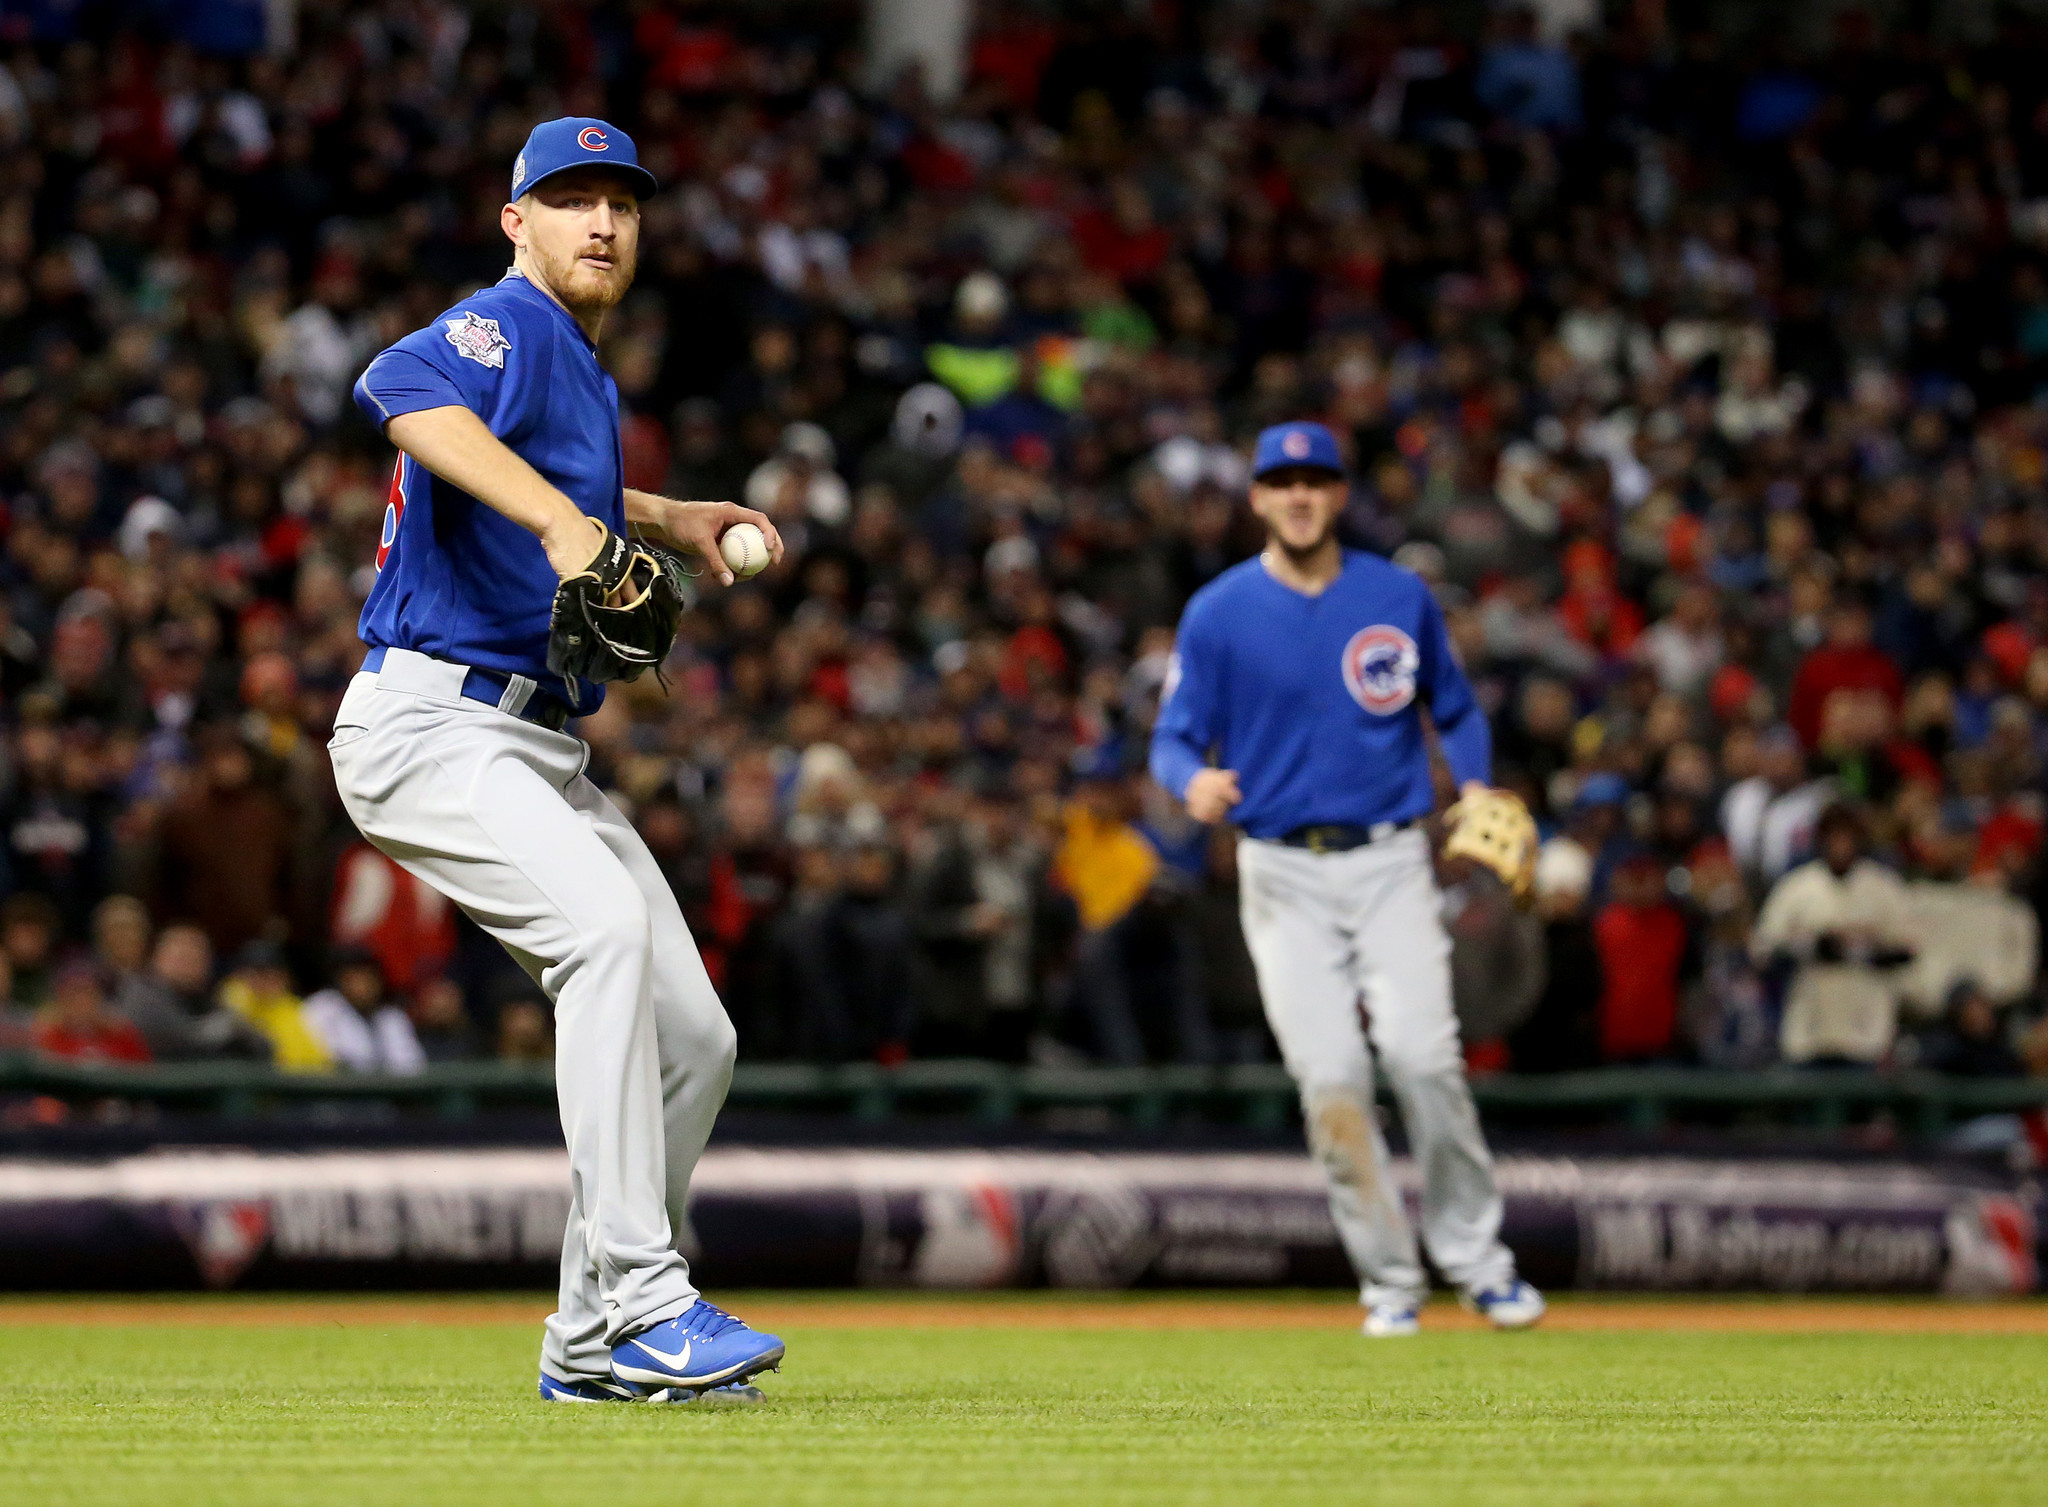 Ct-mike-montgomery-curveball-bits-cubs-spt-1028-20161027